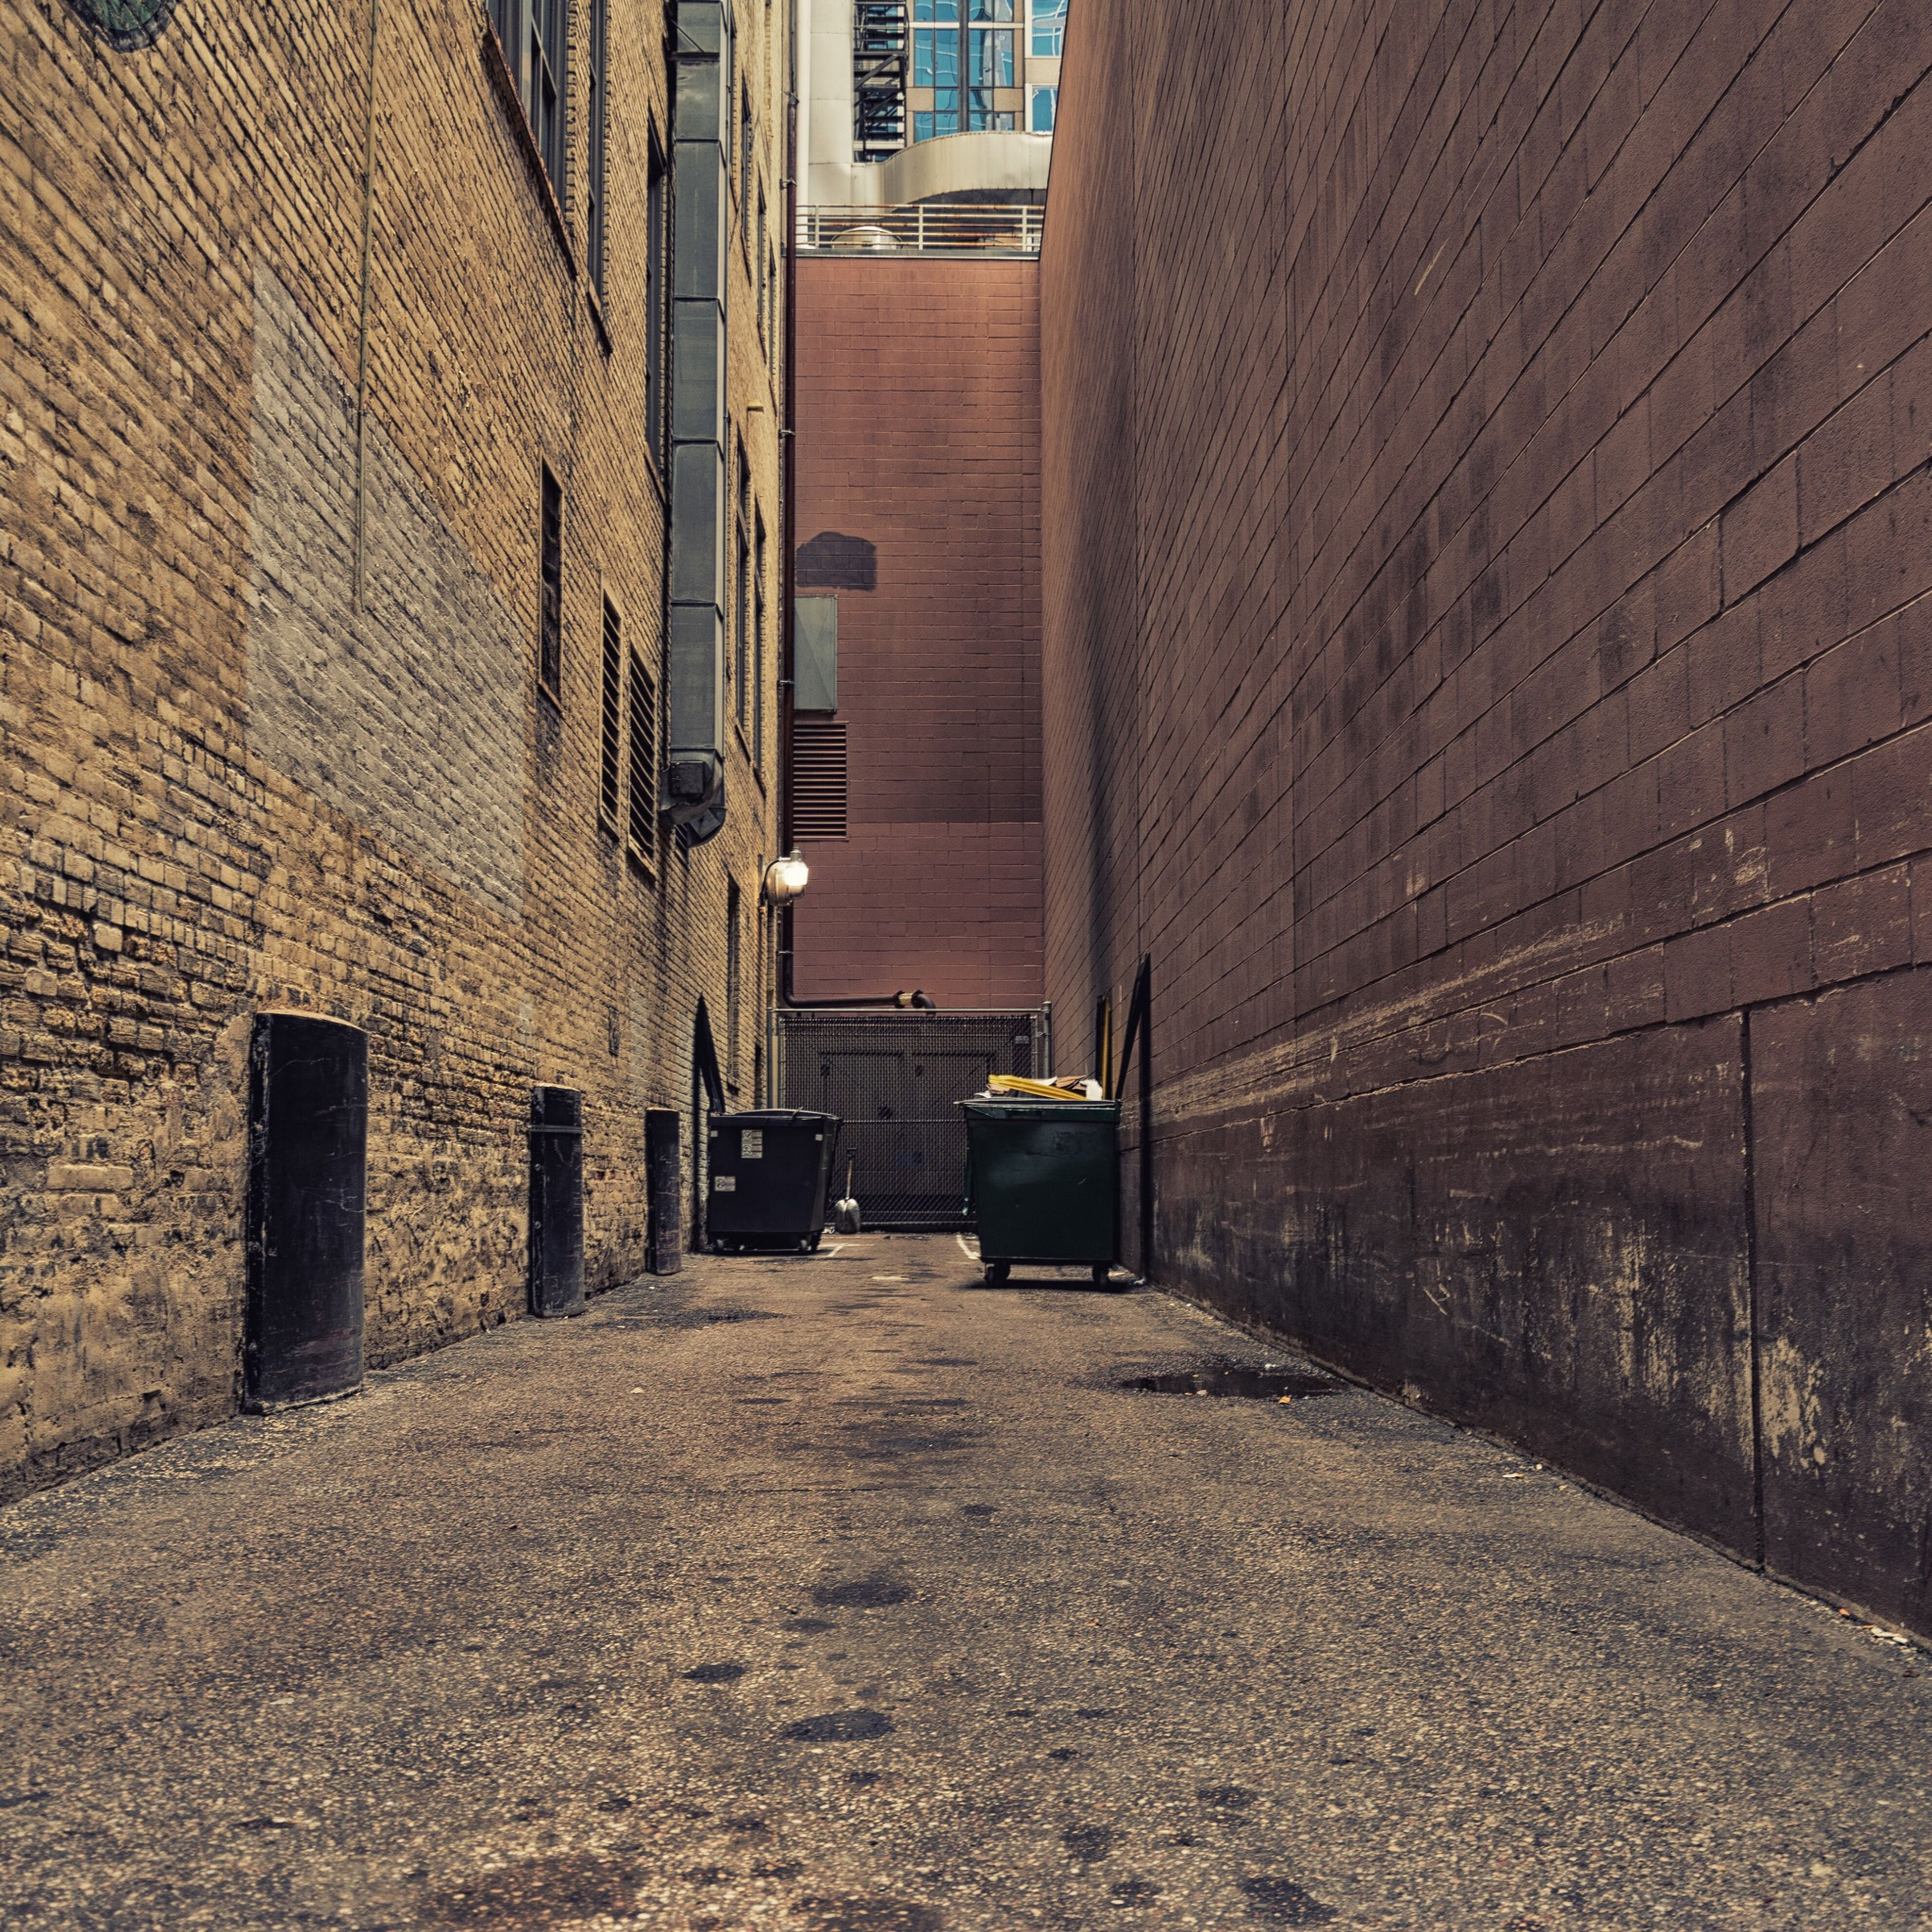 architecture, building exterior, built structure, street, building, transportation, brick wall, residential structure, wall - building feature, city, residential building, the way forward, window, house, alley, day, cobblestone, wall, outdoors, land vehicle